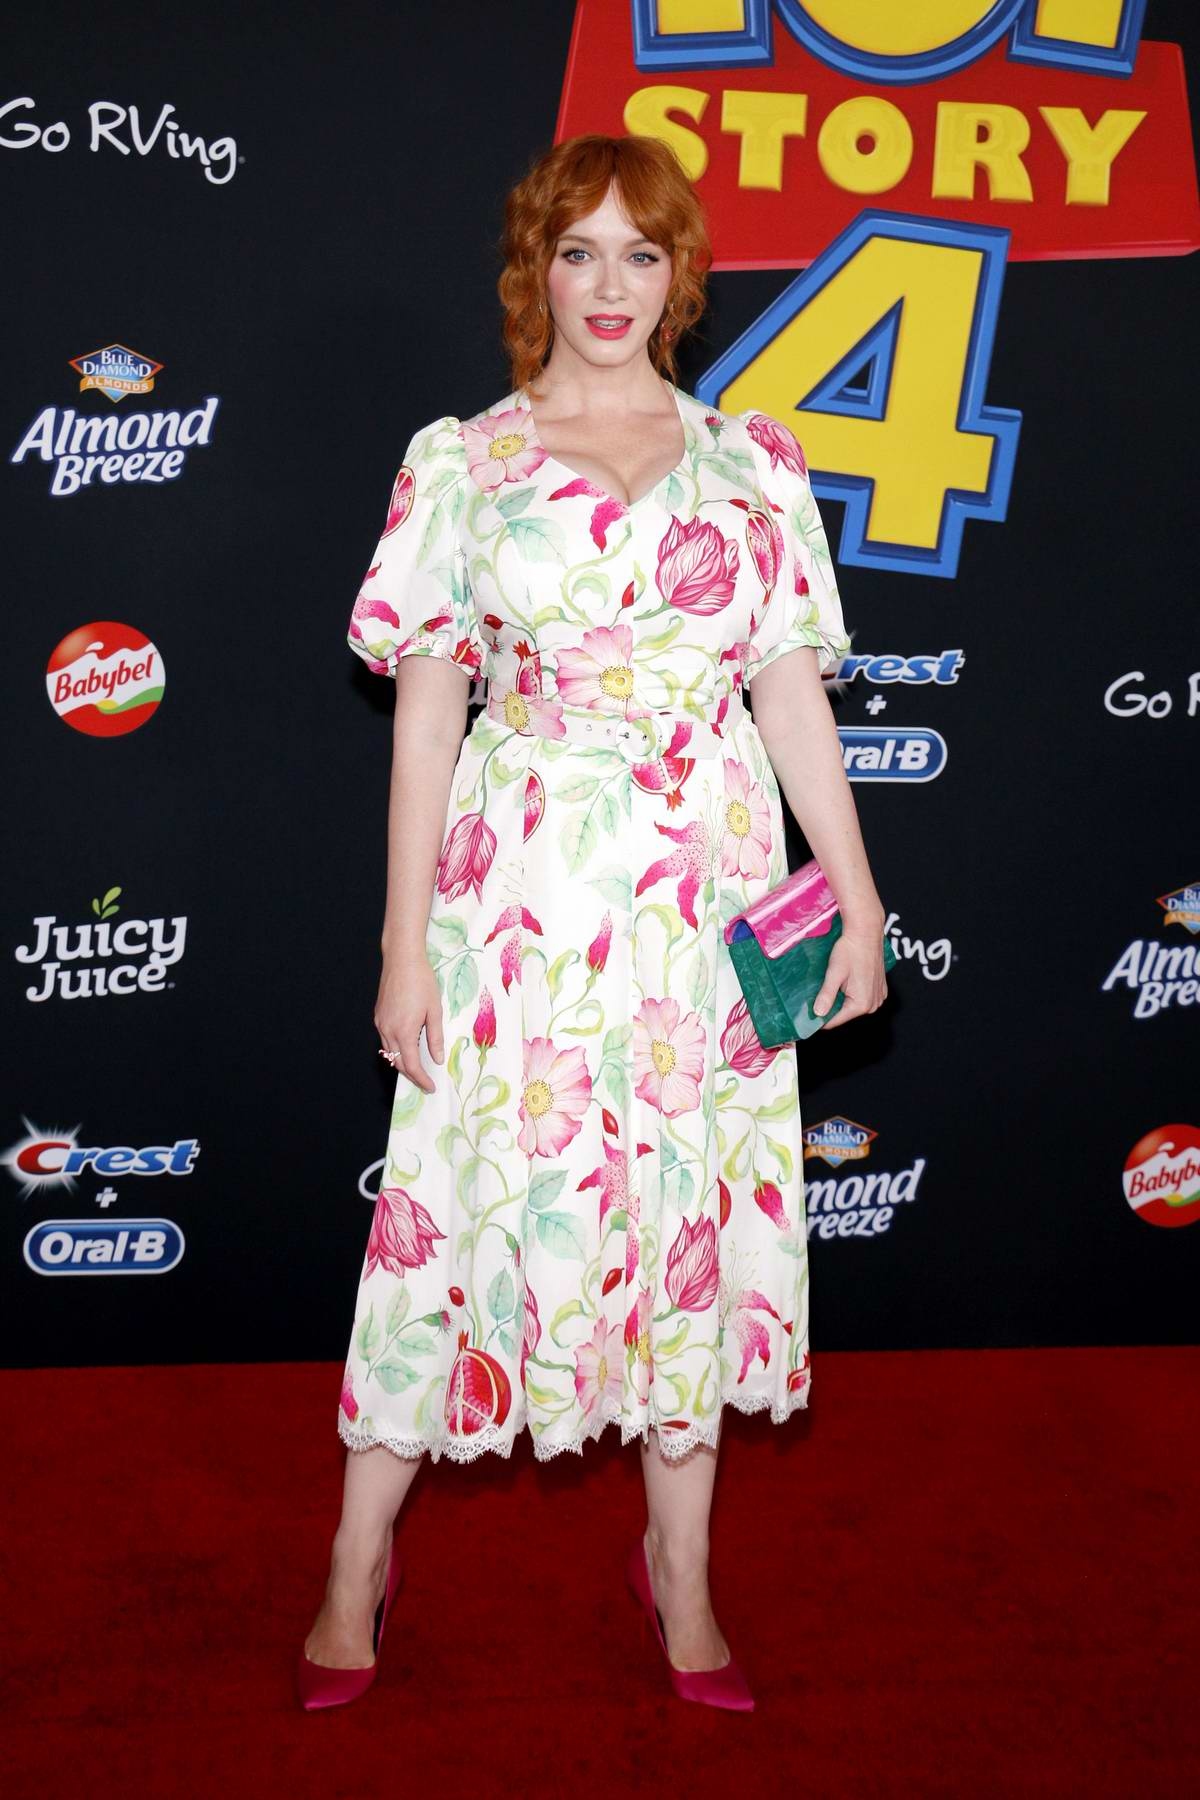 Christina Hendricks attends the World Premiere of 'Toy Story 4' at the El Capitan Theater in Hollywood, California